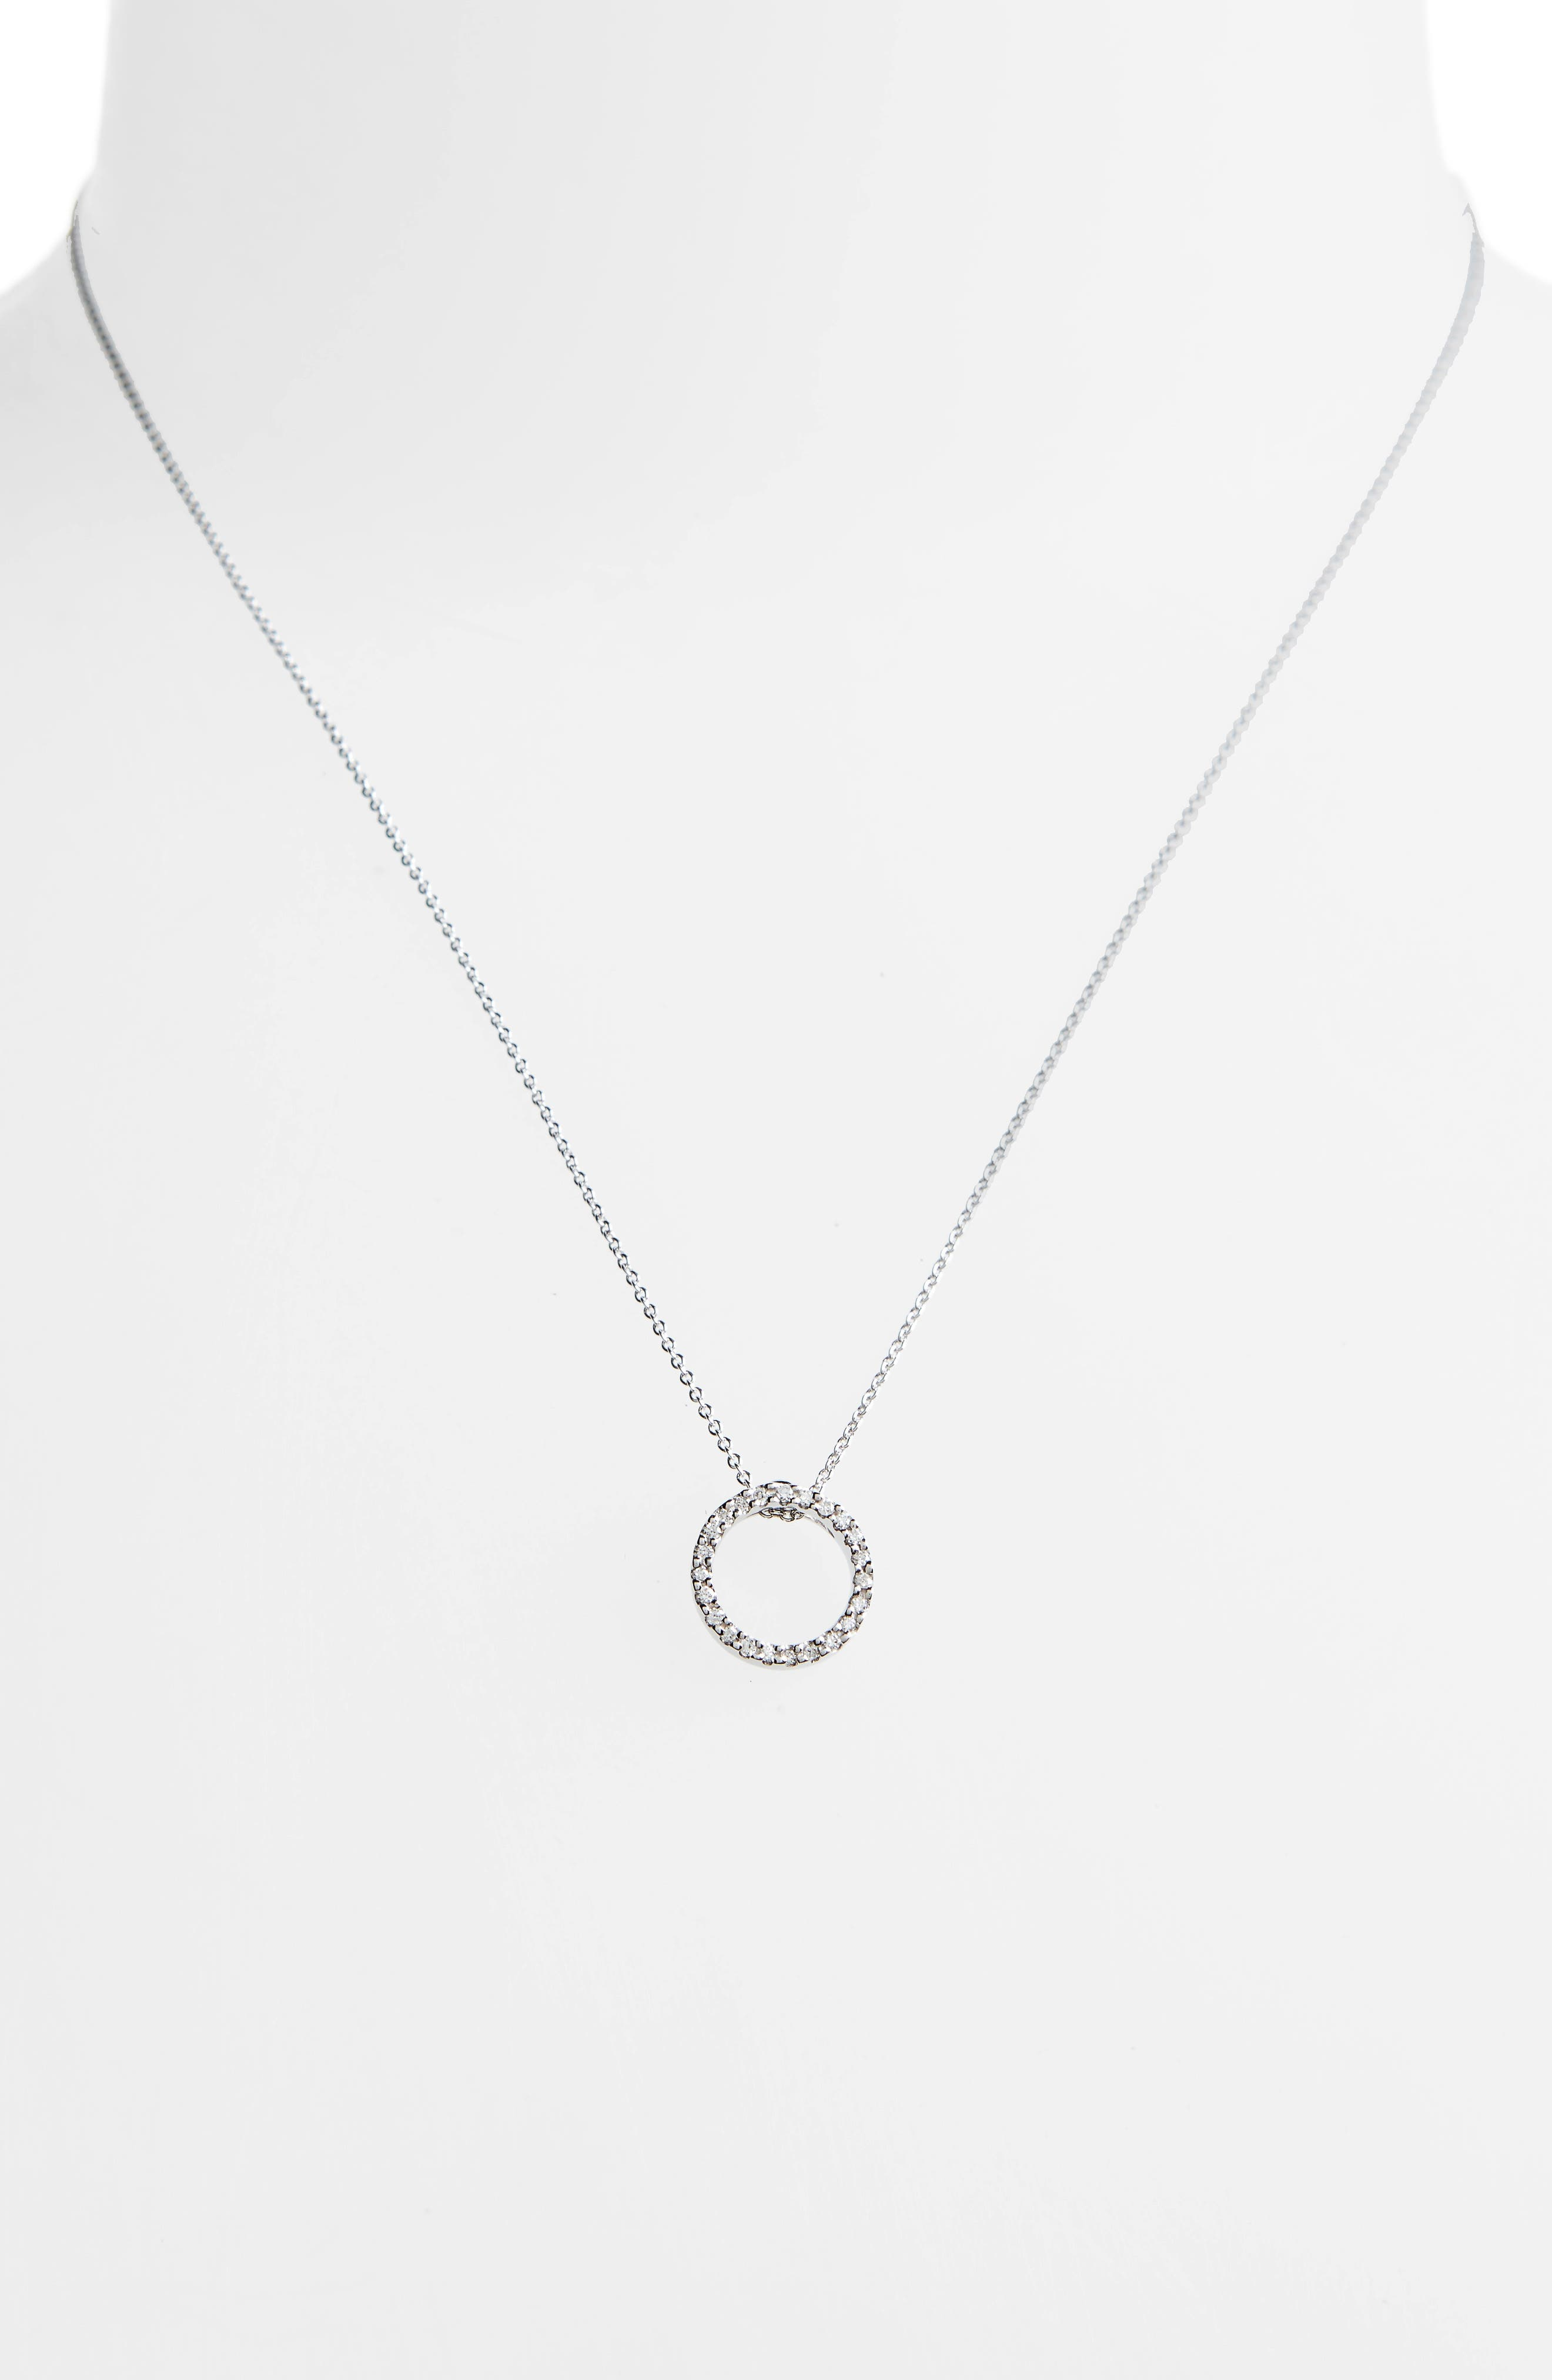 ROBERTO COIN,                             'Tiny Treasures' Small Diamond Circle Pendant Necklace,                             Alternate thumbnail 3, color,                             WHITE GOLD